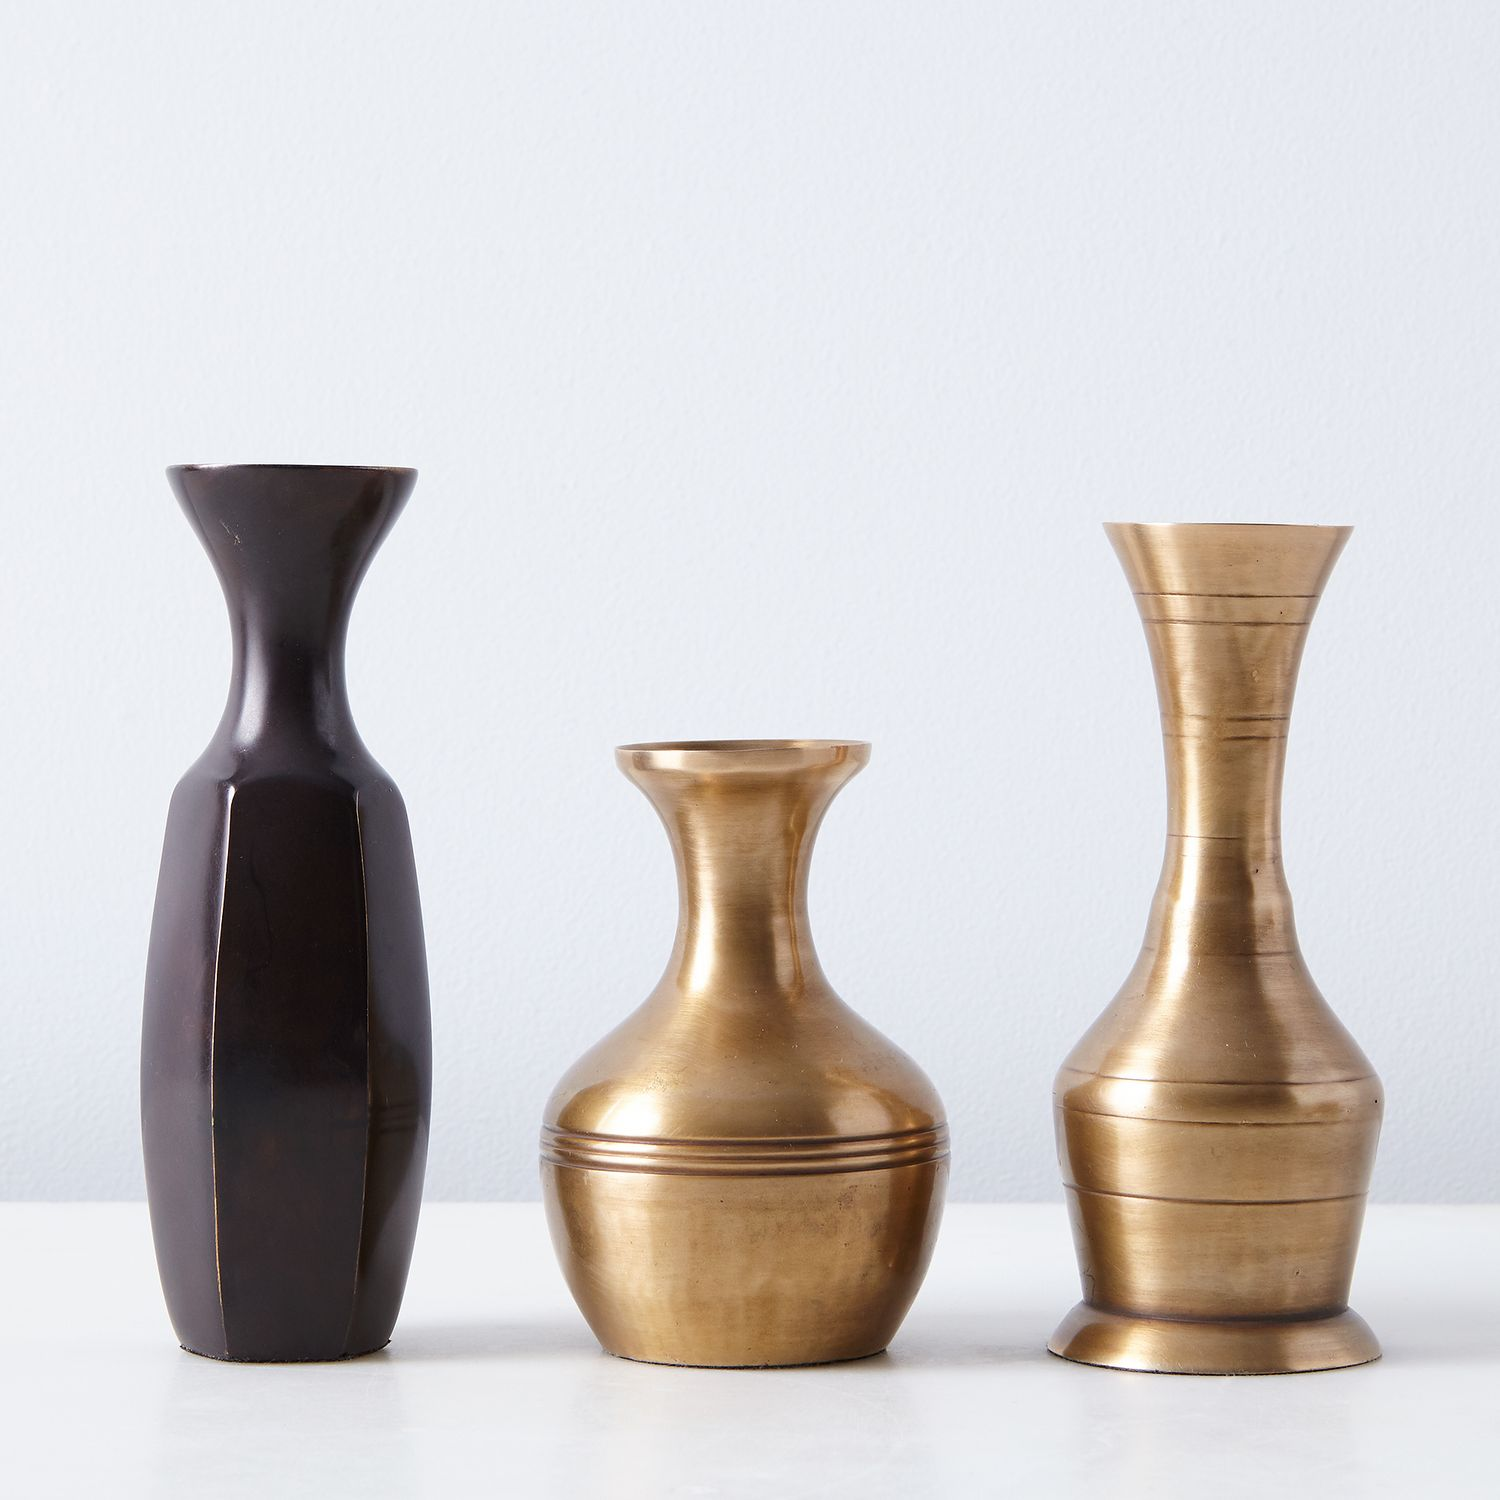 food52-vintage-inspired-brass-bud-vases-(set-of-3) by food52